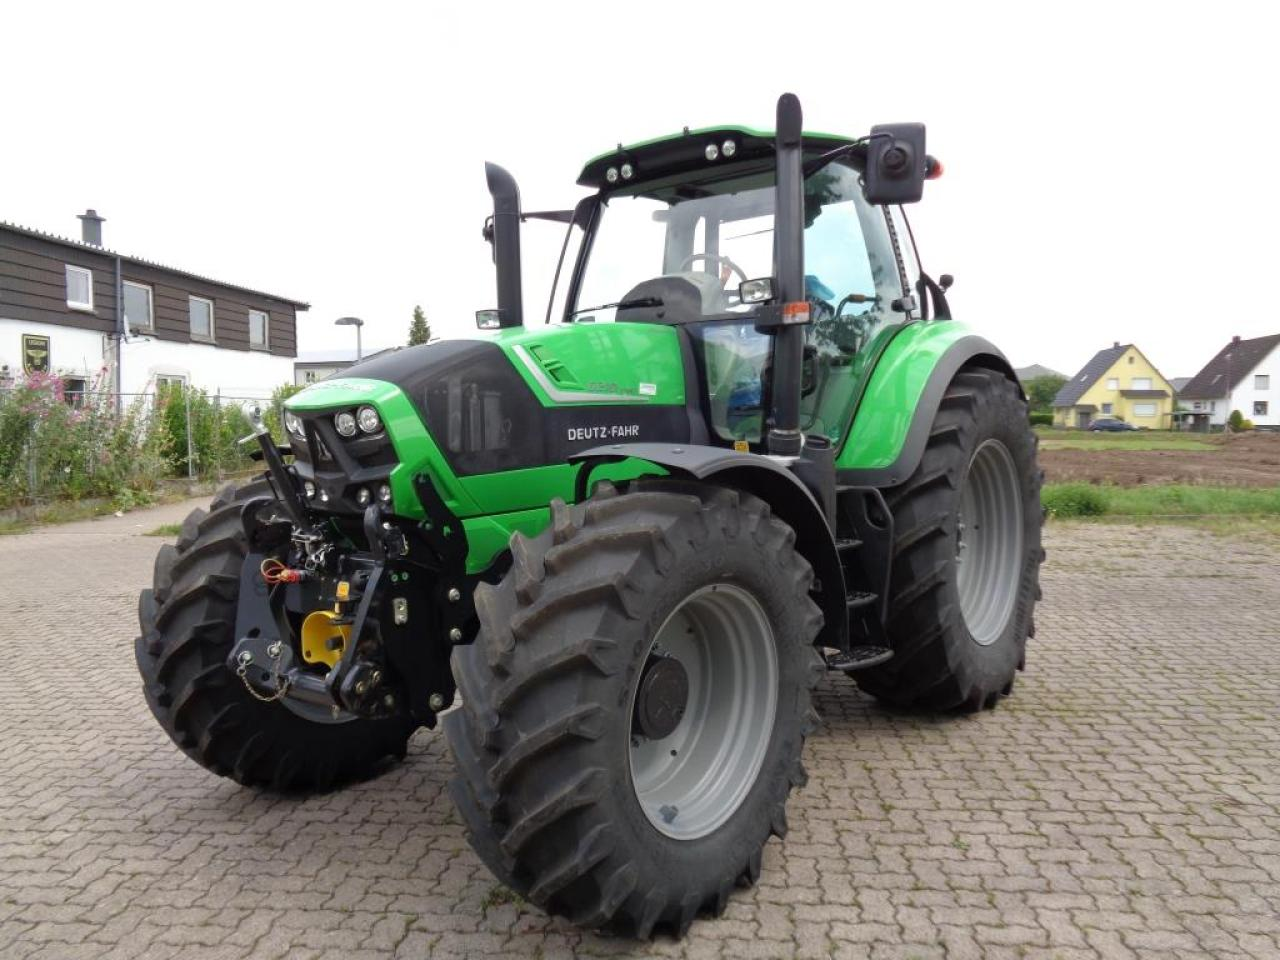 Deutz-Fahr Agrotron 6210 C-Shift